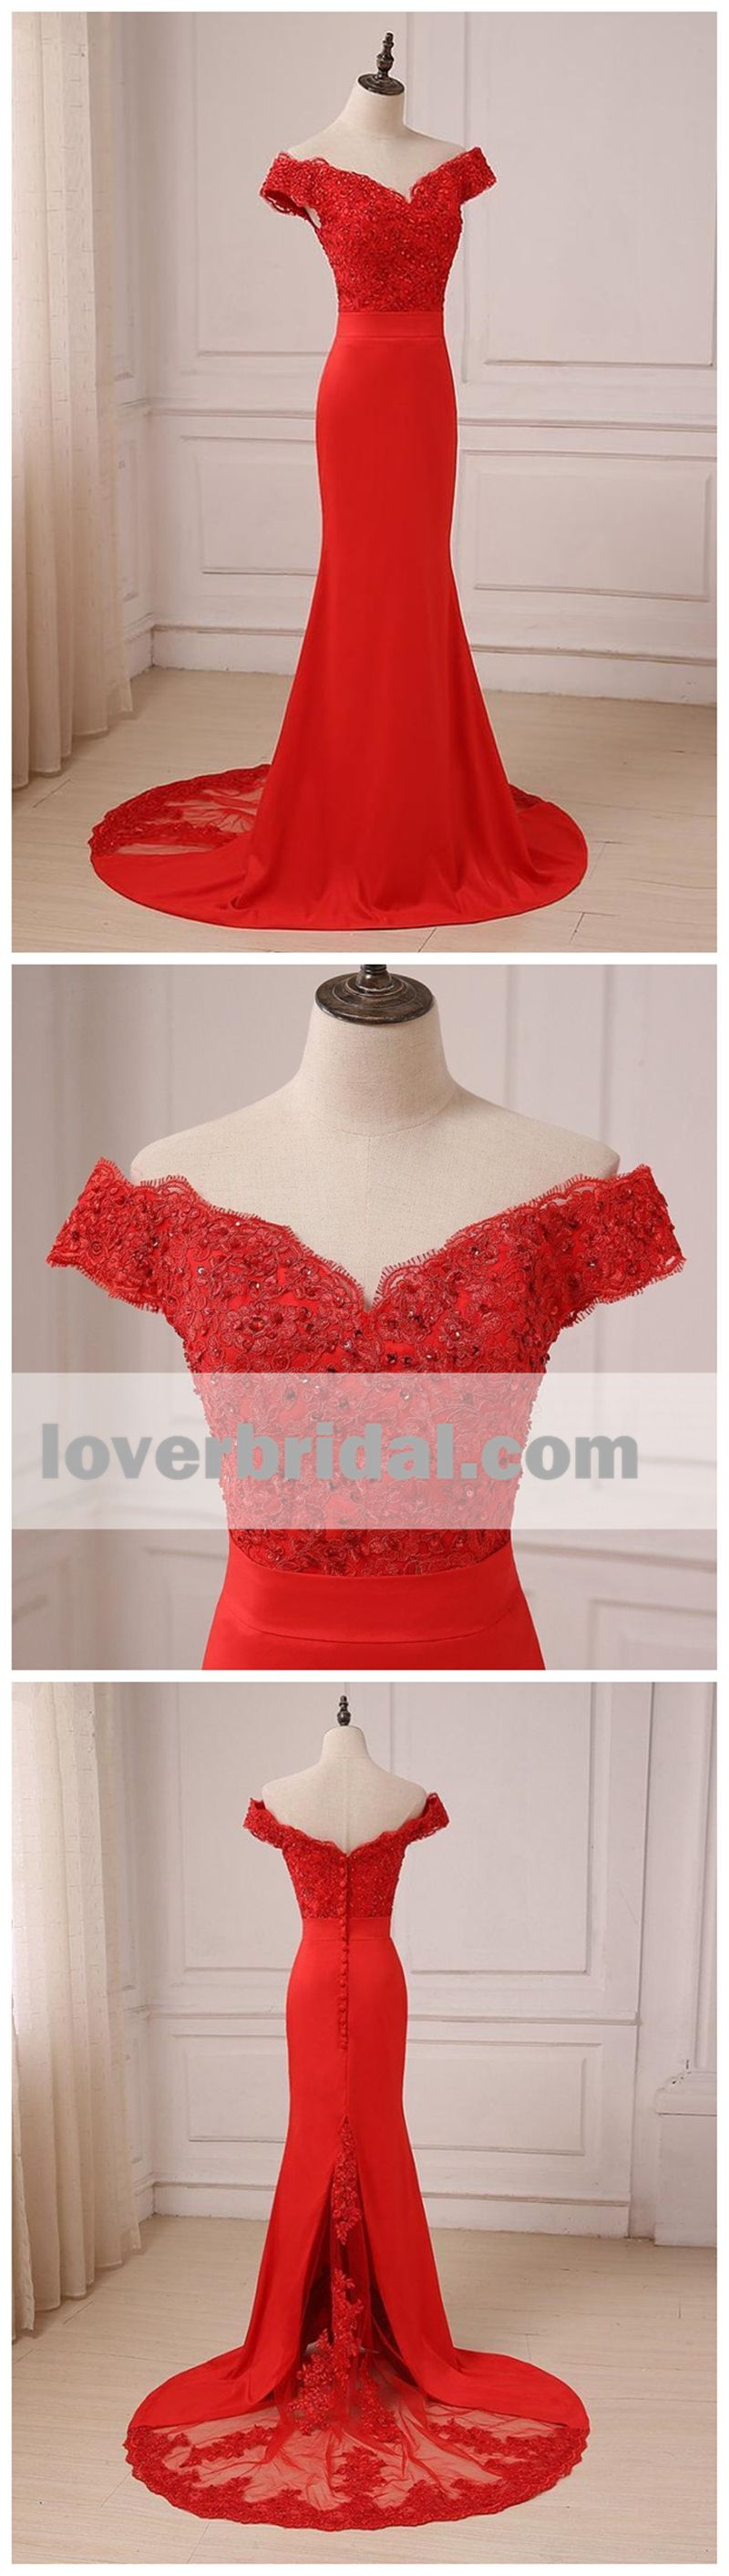 Off shoulder bright red lace mermaid long evening prom dresses